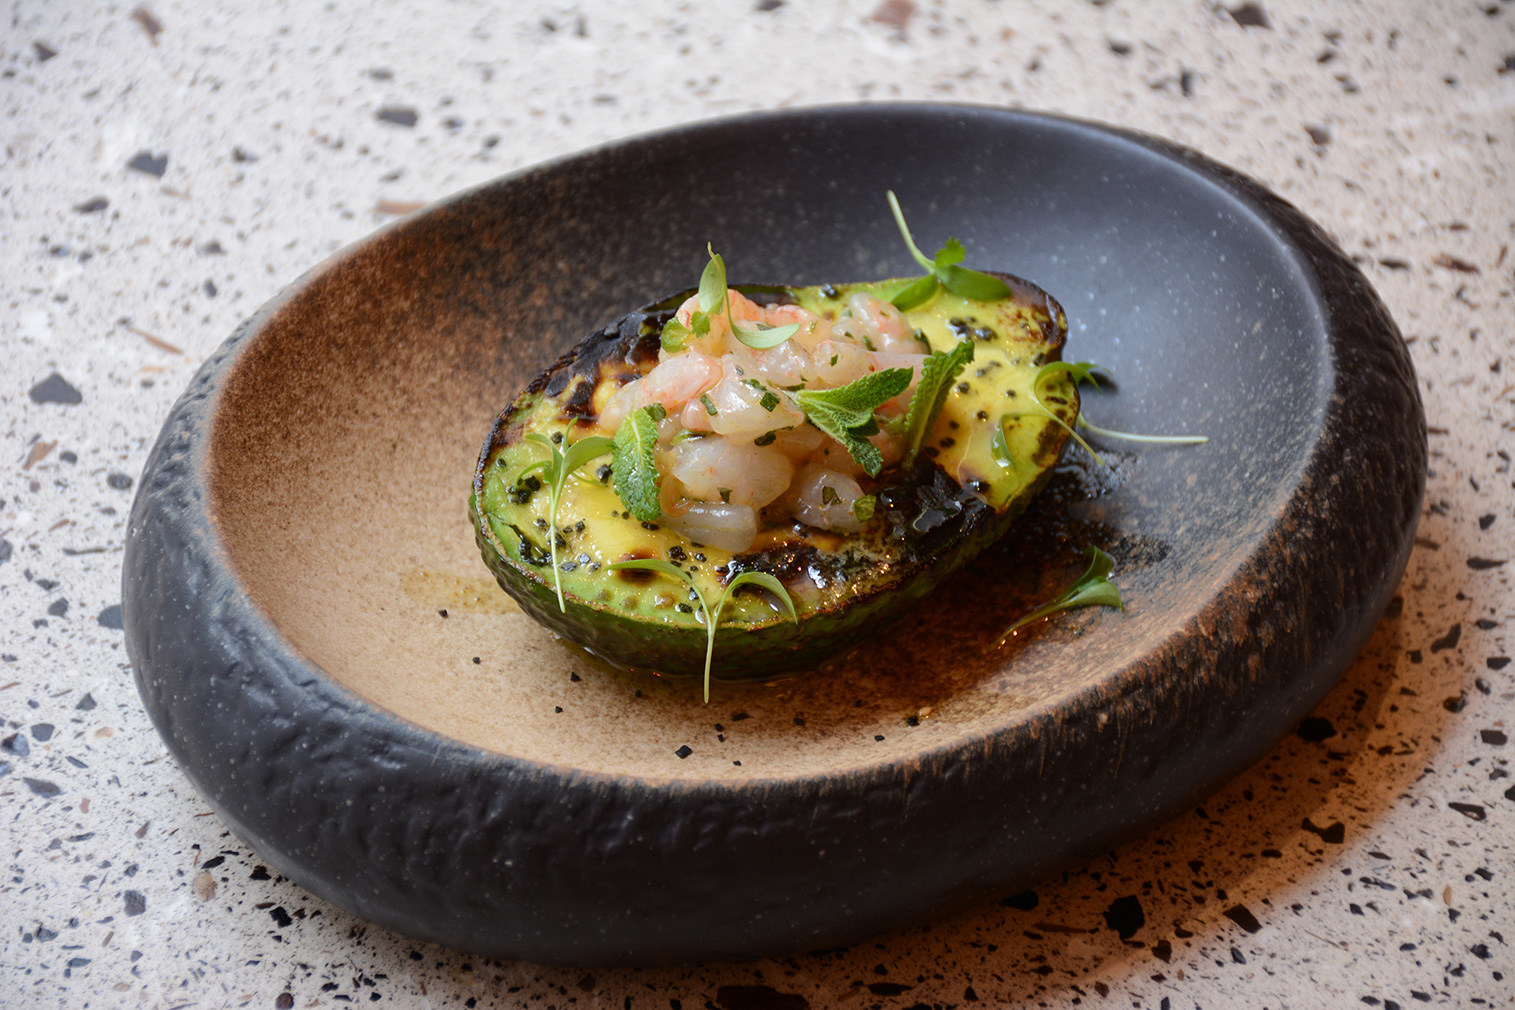 Grilled avocado topped by shrimp